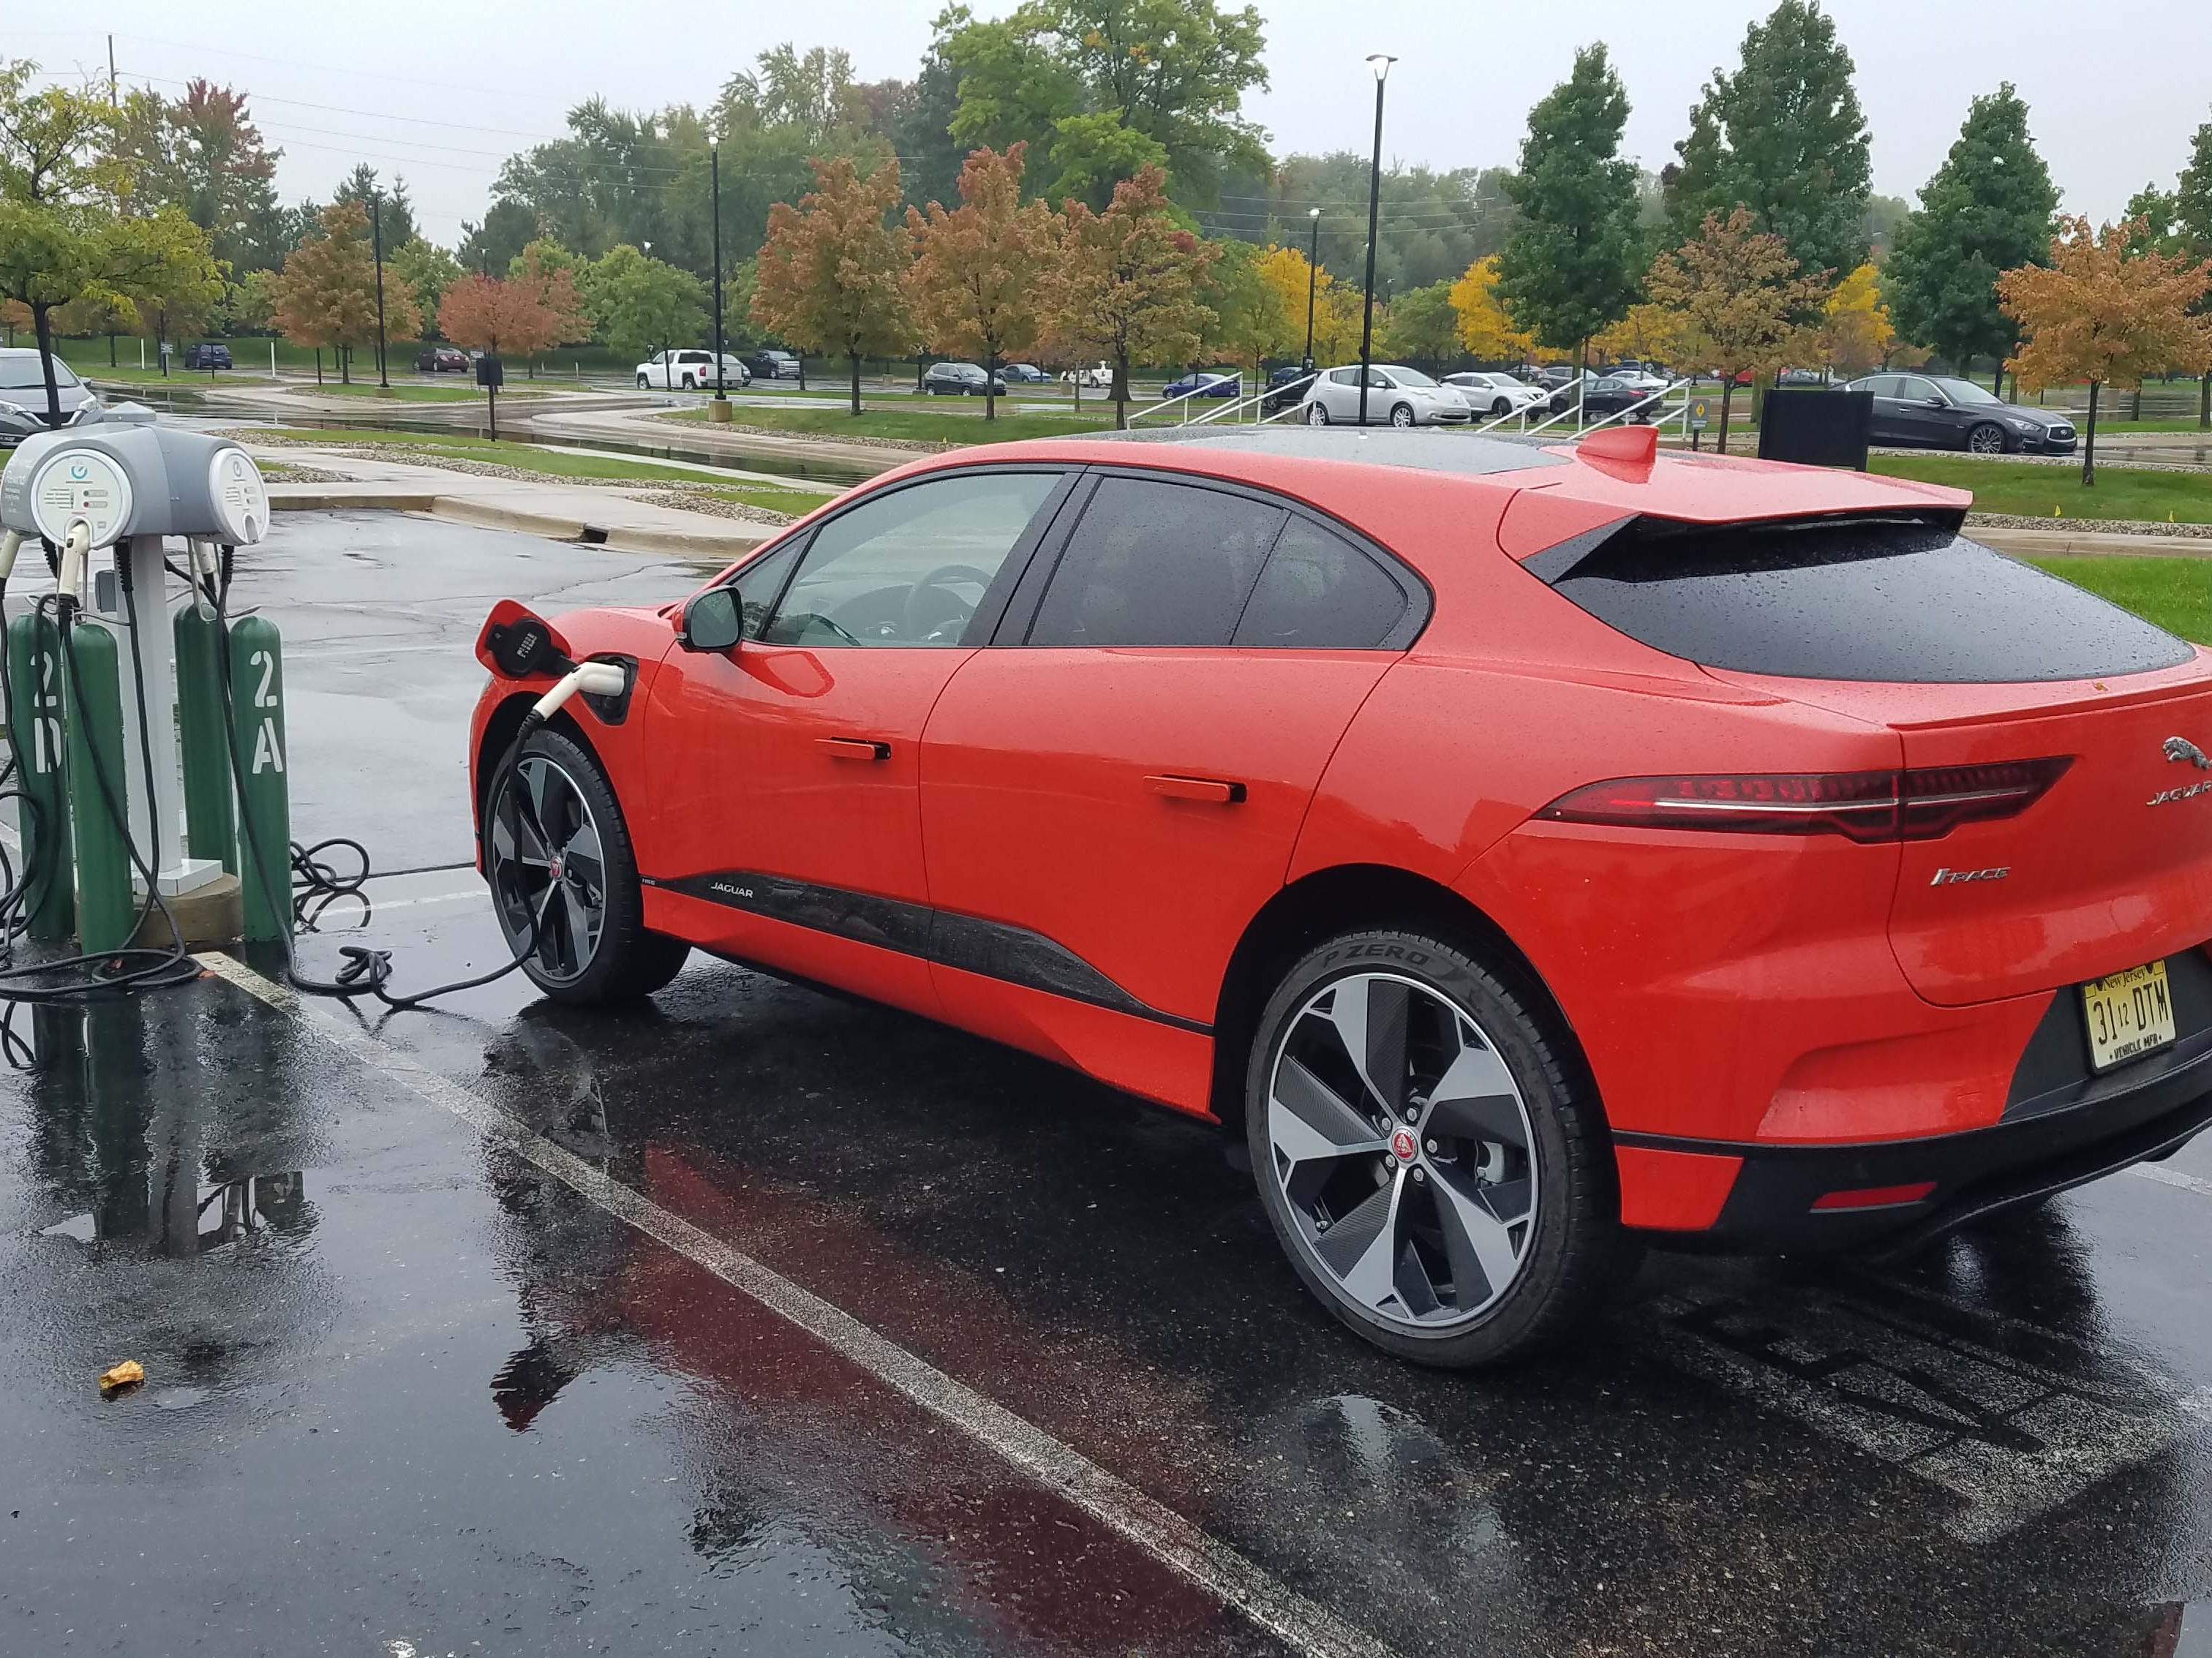 The Jaguar I-Pace charges on a 240-volt charger Saturday afternoon for two hours while Payne gets work done on his laptop inside.